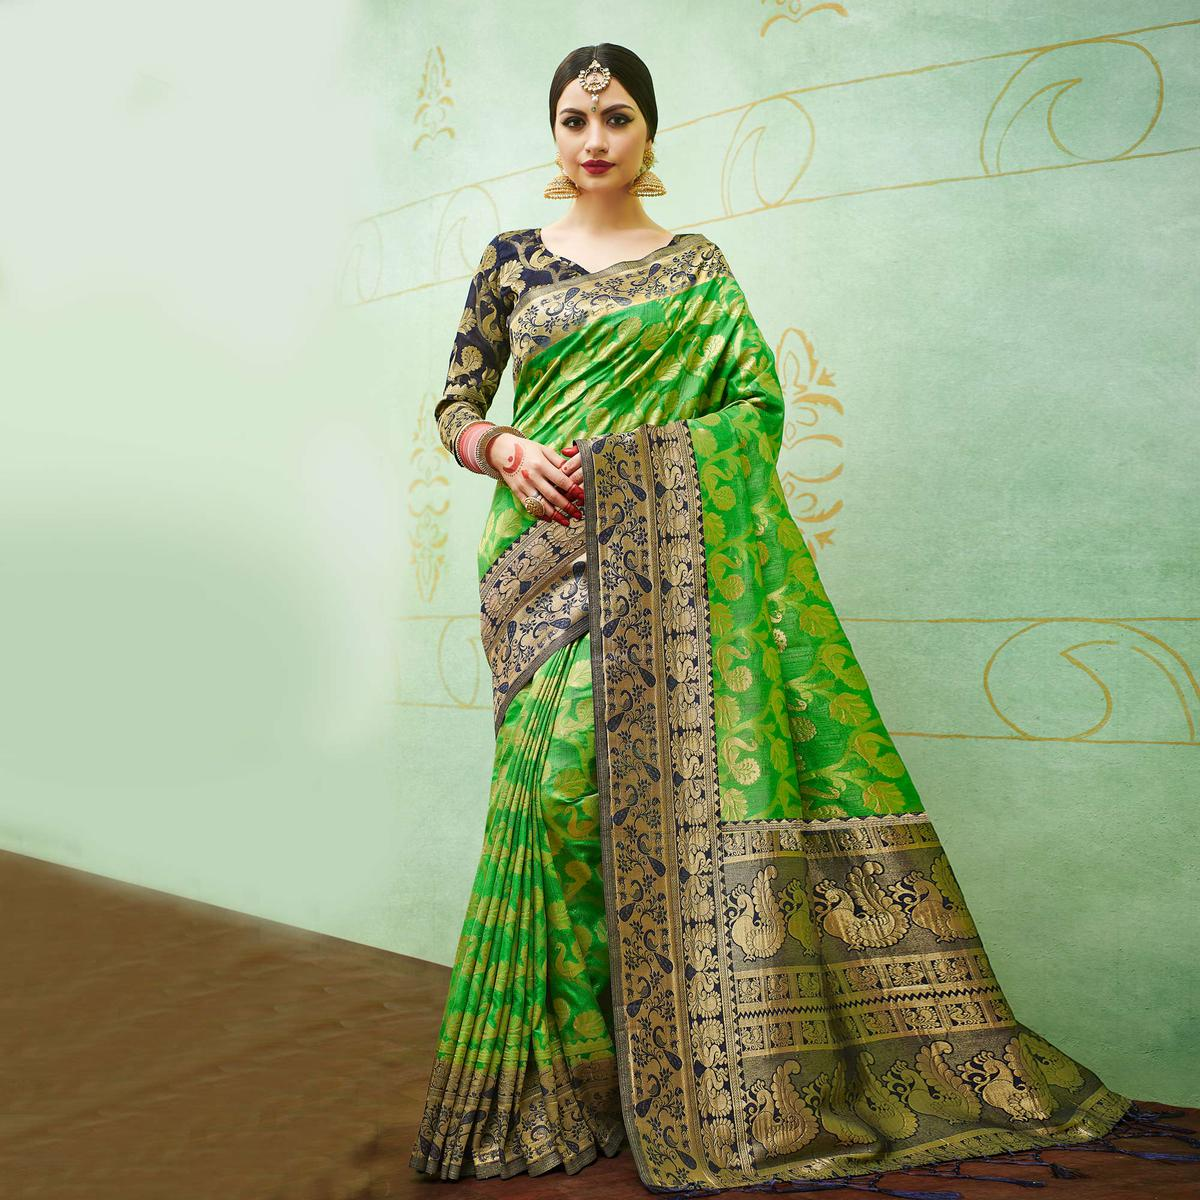 ffd53baf0b496 Buy Green-Blue Colored Designer Festive Wear Banarasi Silk Saree Online  India